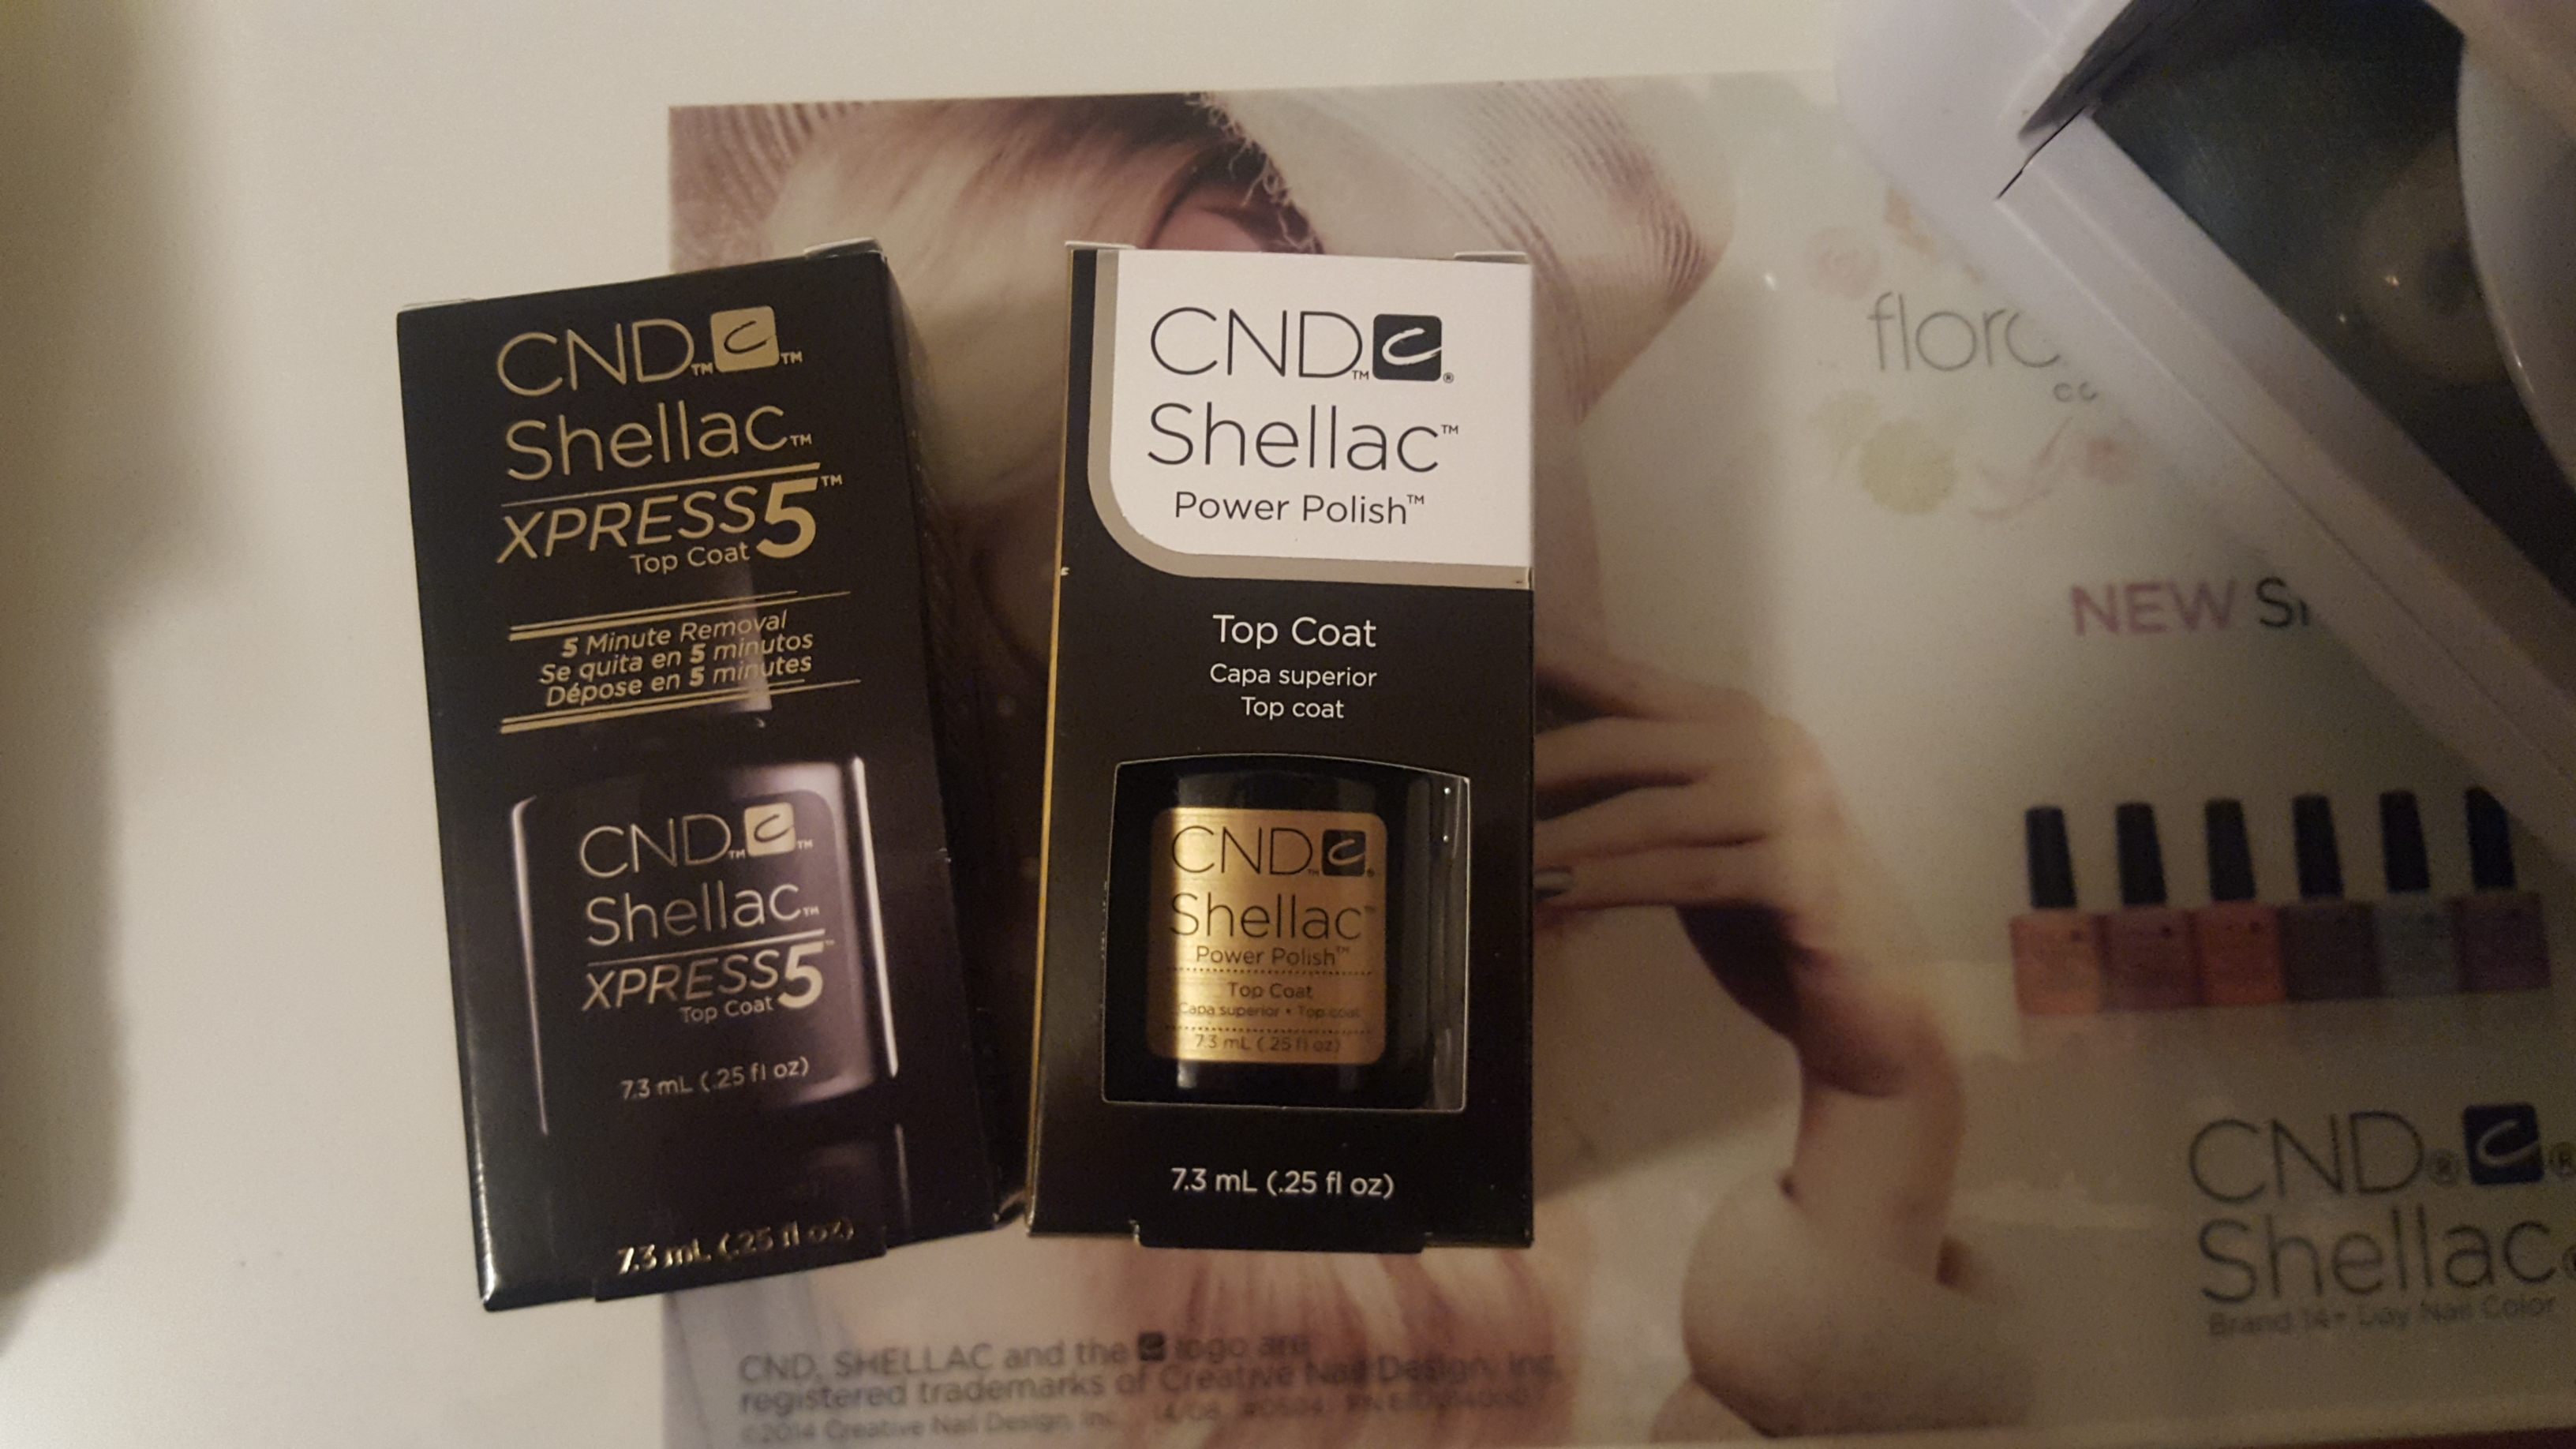 CND shellac nail polish brands